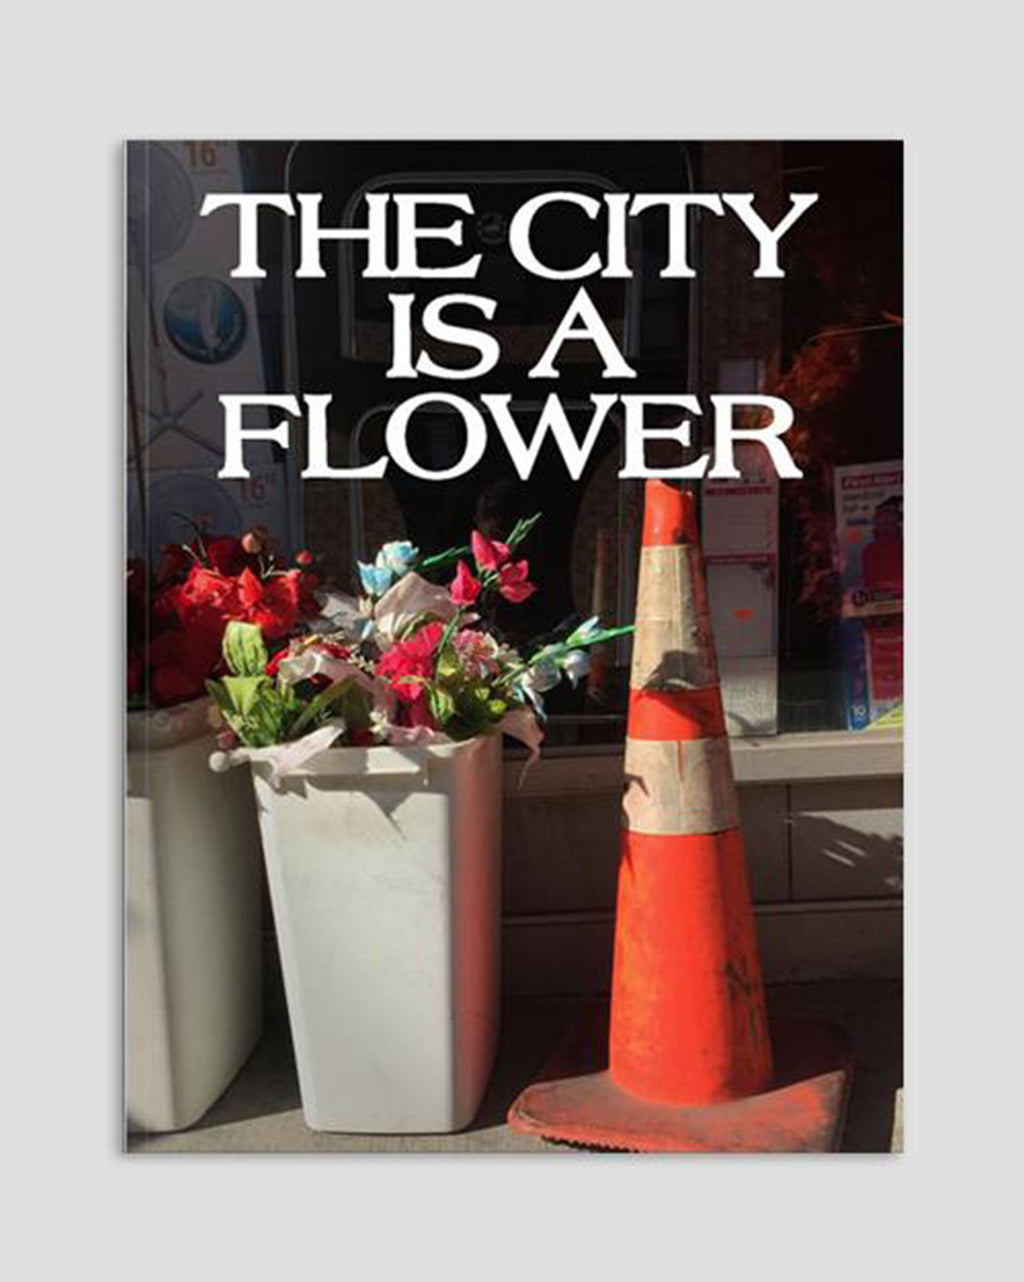 The City is a Flower